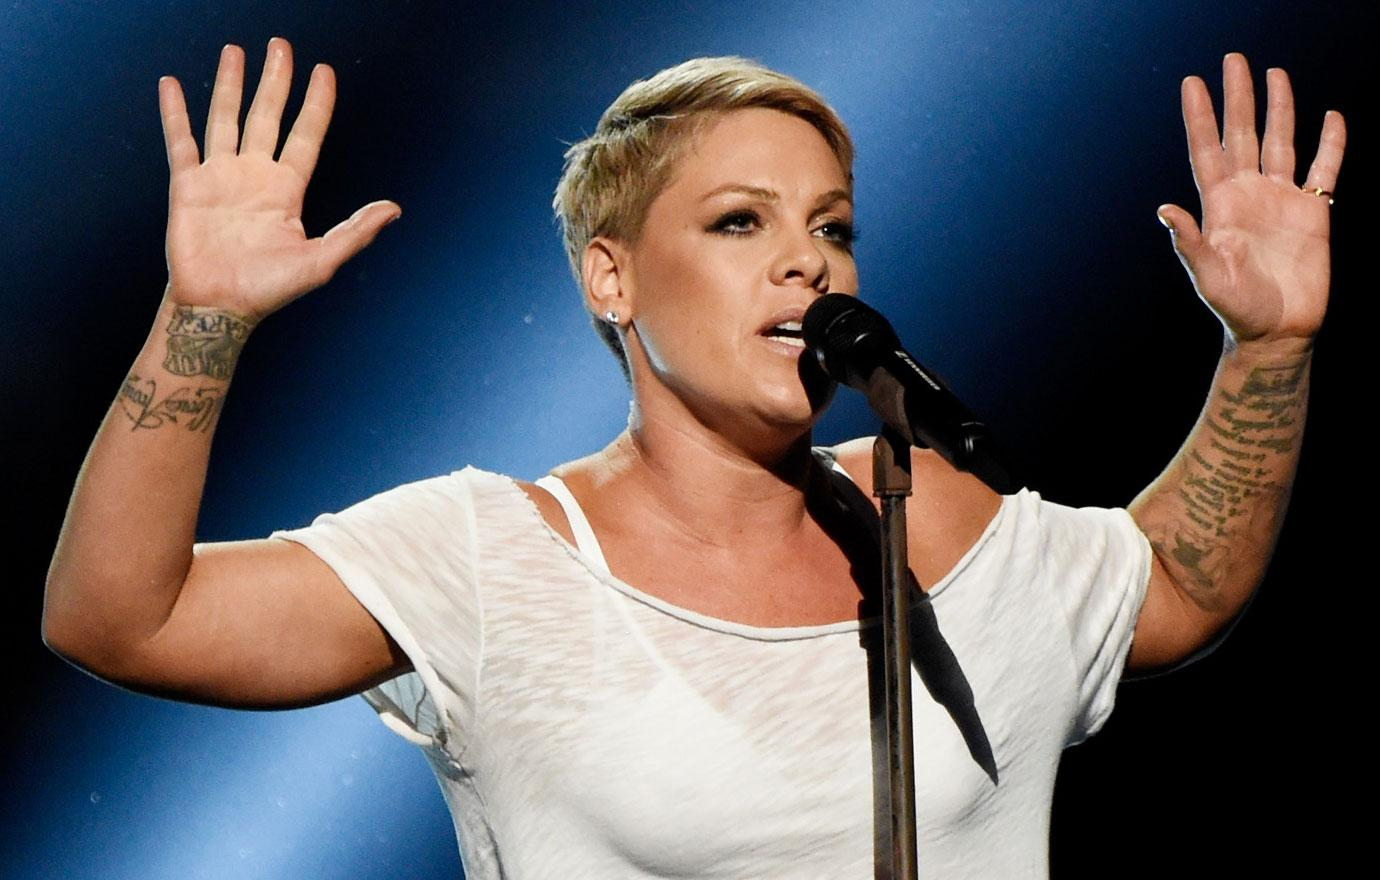 Pink Asked To Lip Sync At Super Bowl